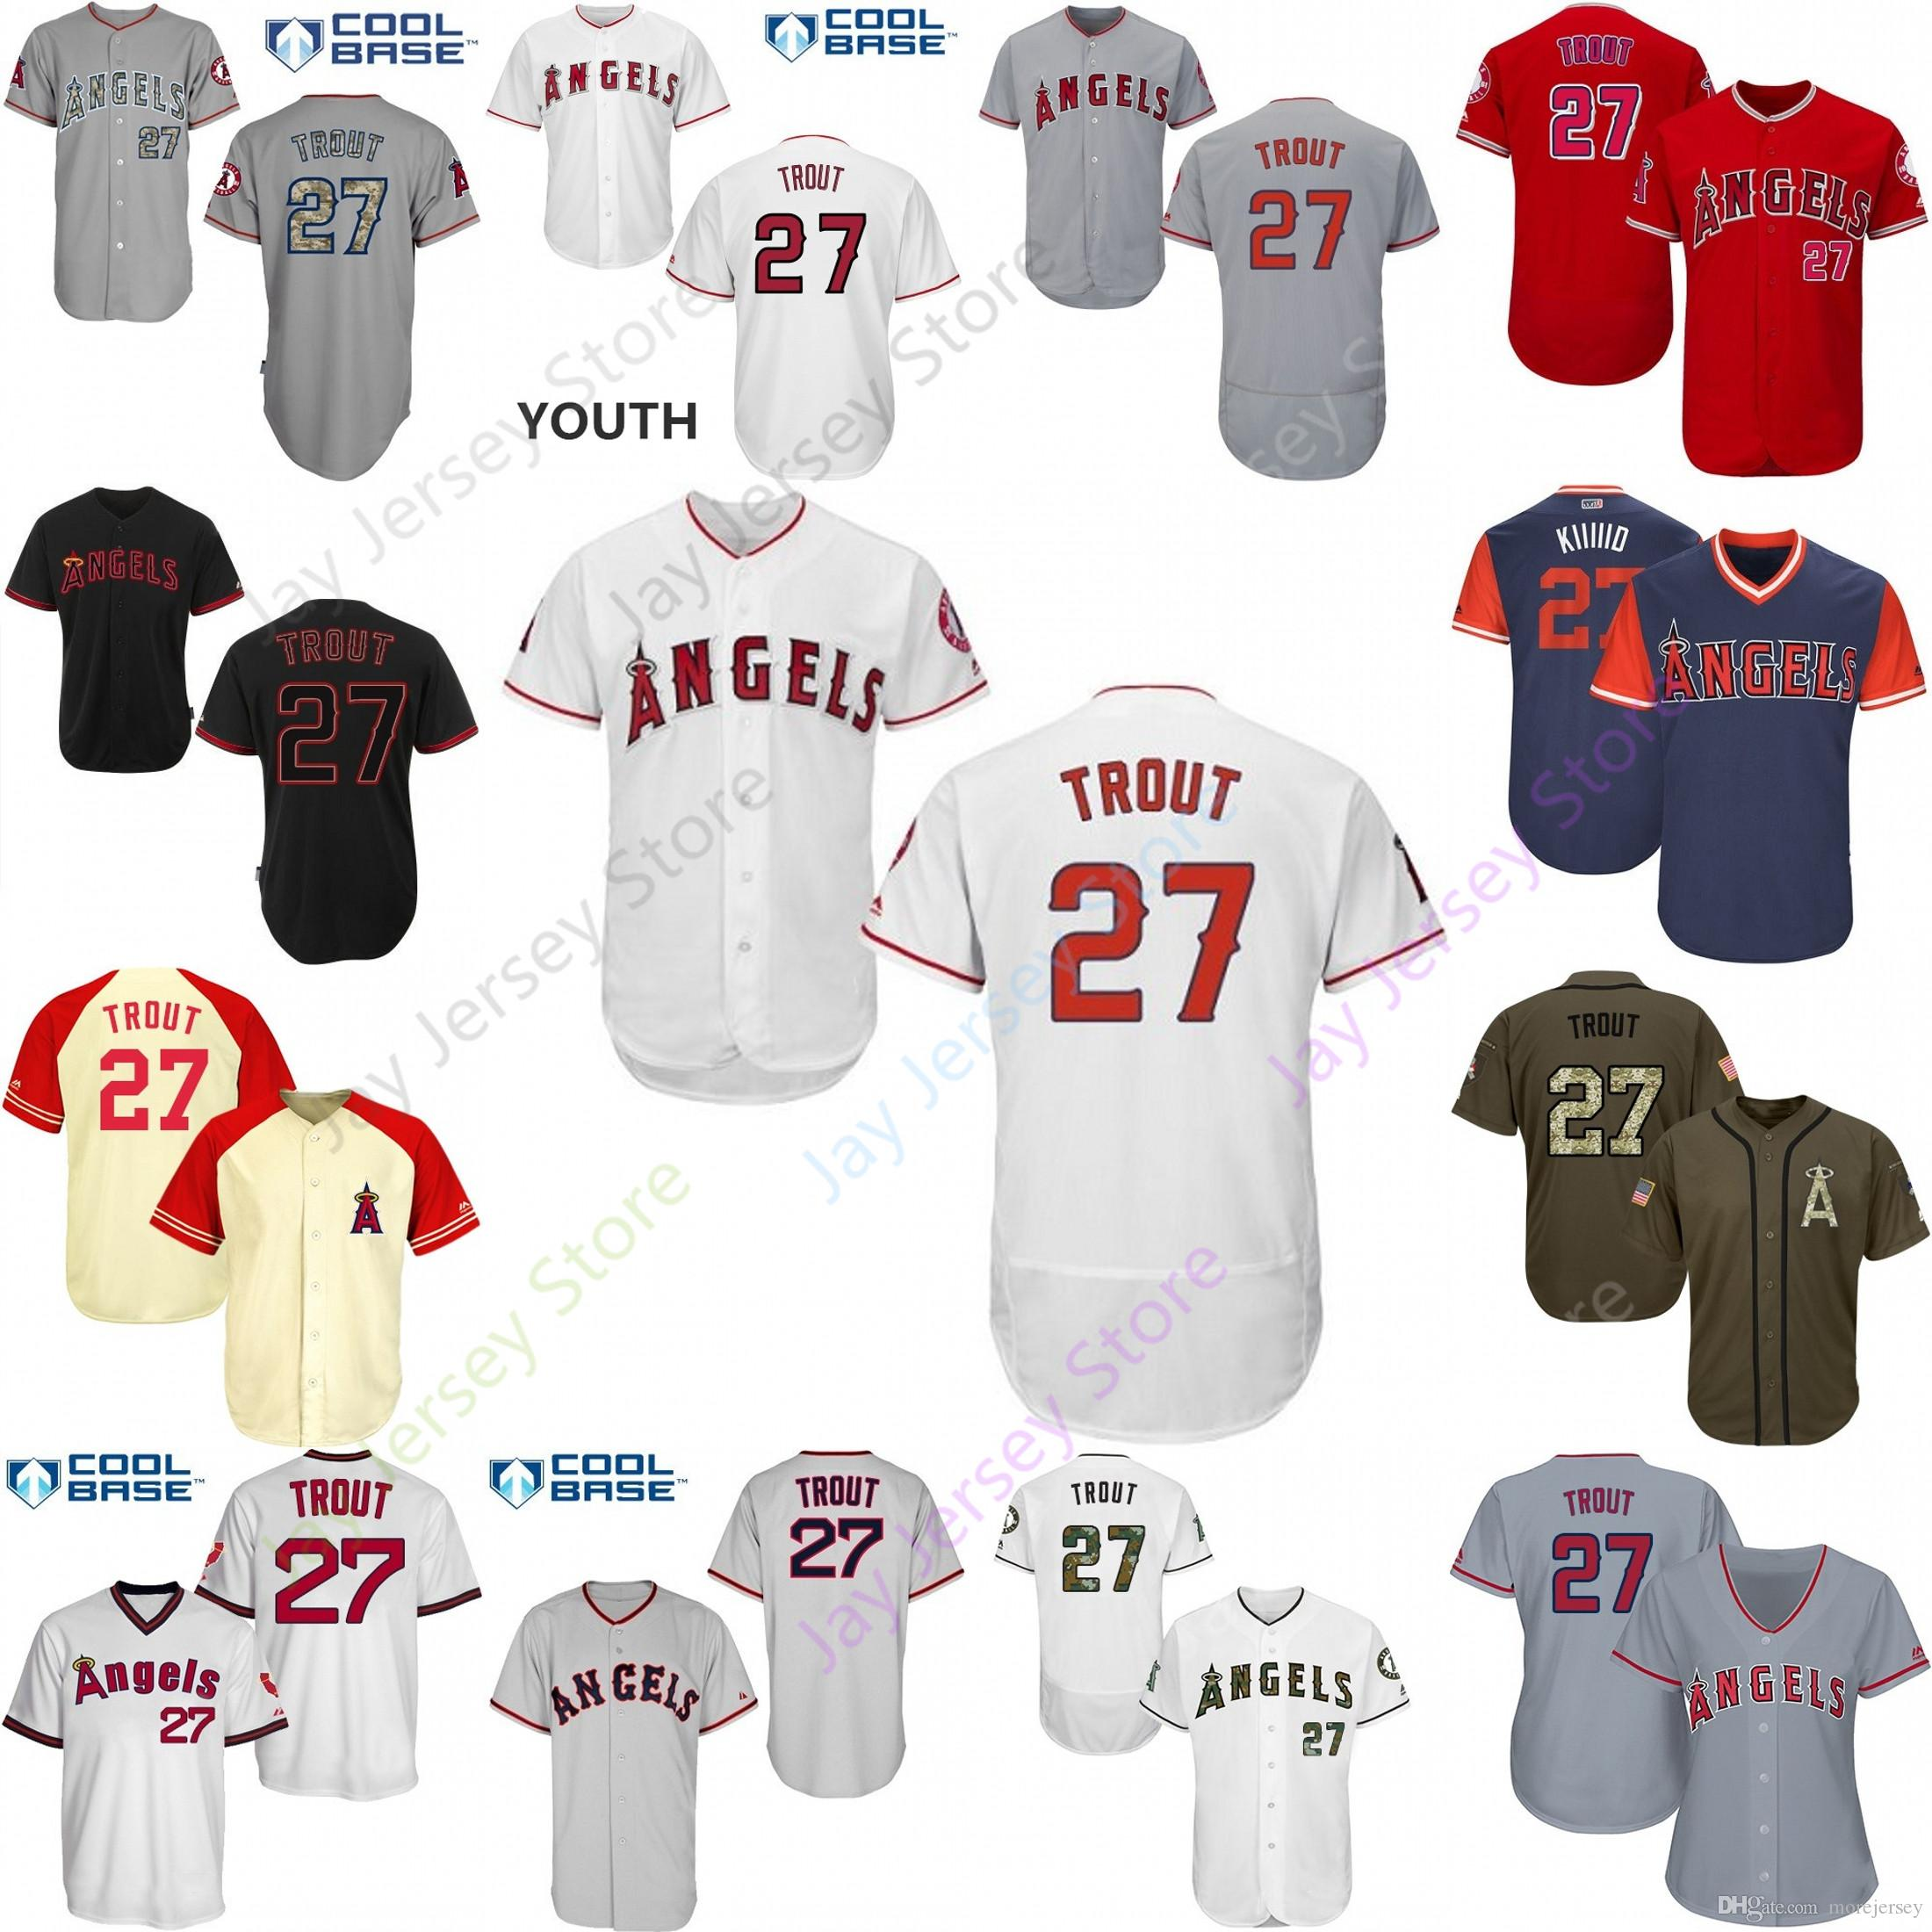 reputable site f829e 9f700 2019 2019 Los Angeles 27 Mike Trout Jersey Angels Of Anaheim Jerseys  CoolBase Flexbase Home Away White Black Red Grey Pullover Button Men Women  From ...